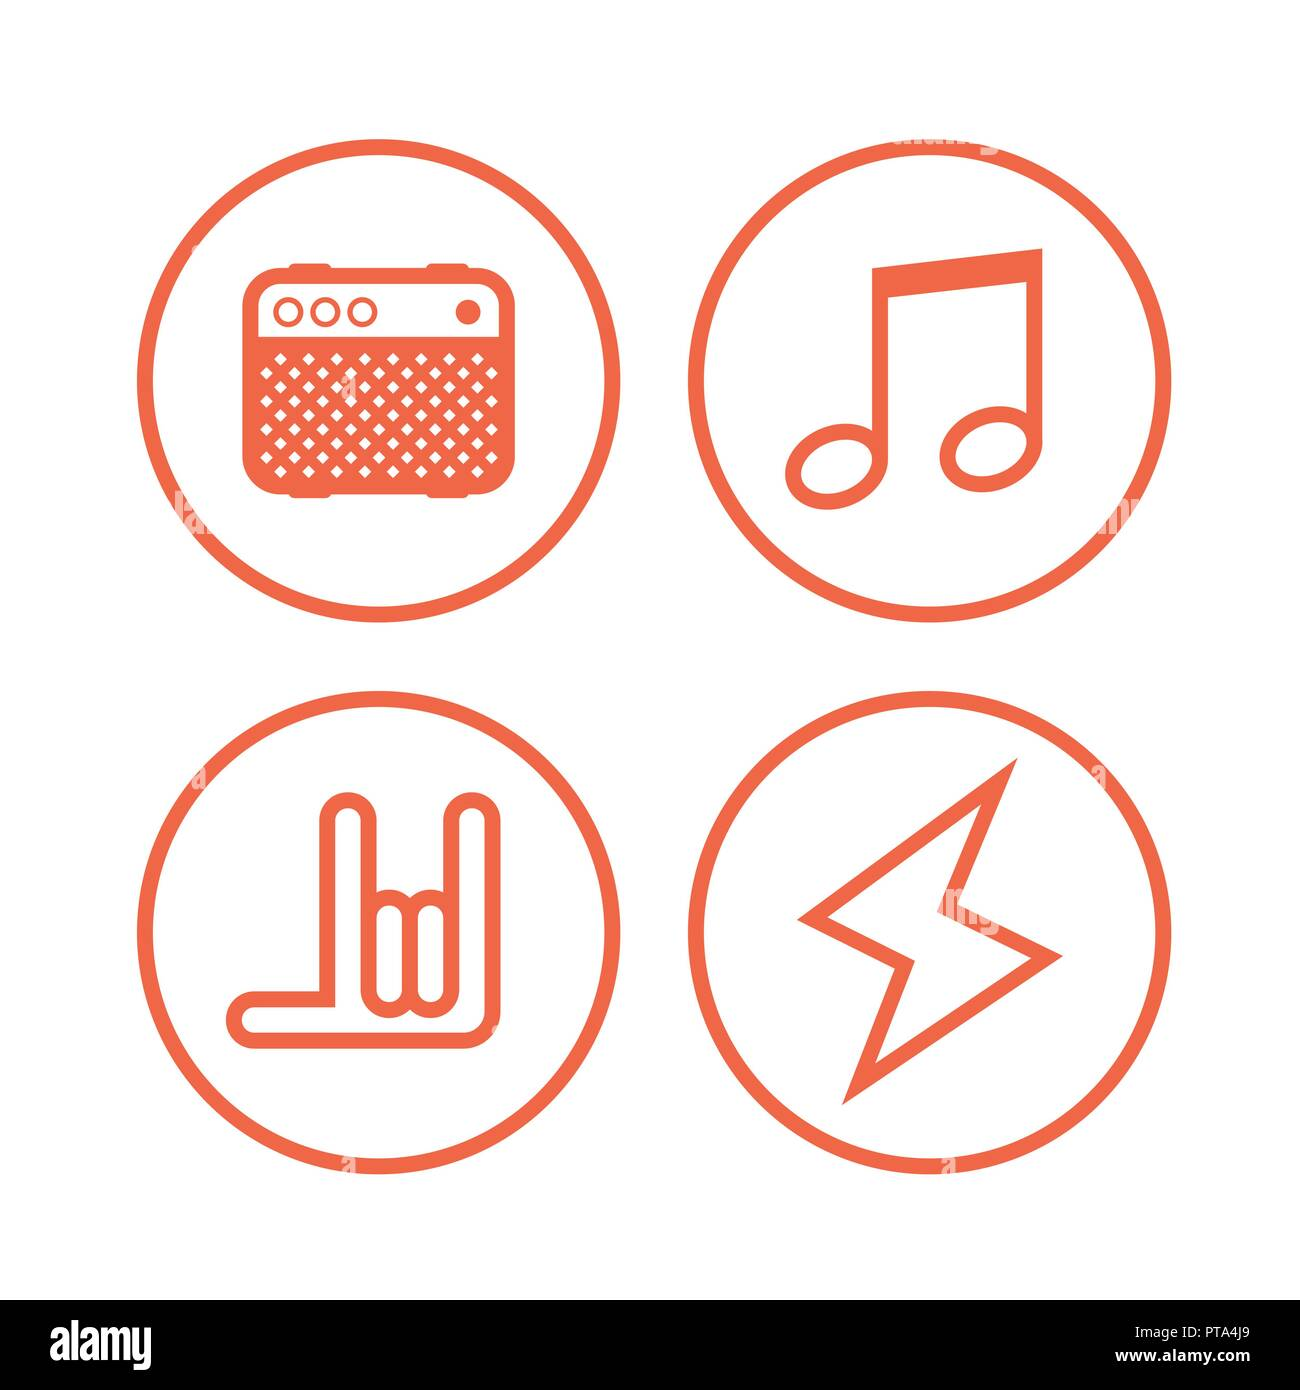 Icon of Rock Music Symbols  Round Vector Icons isolated on white